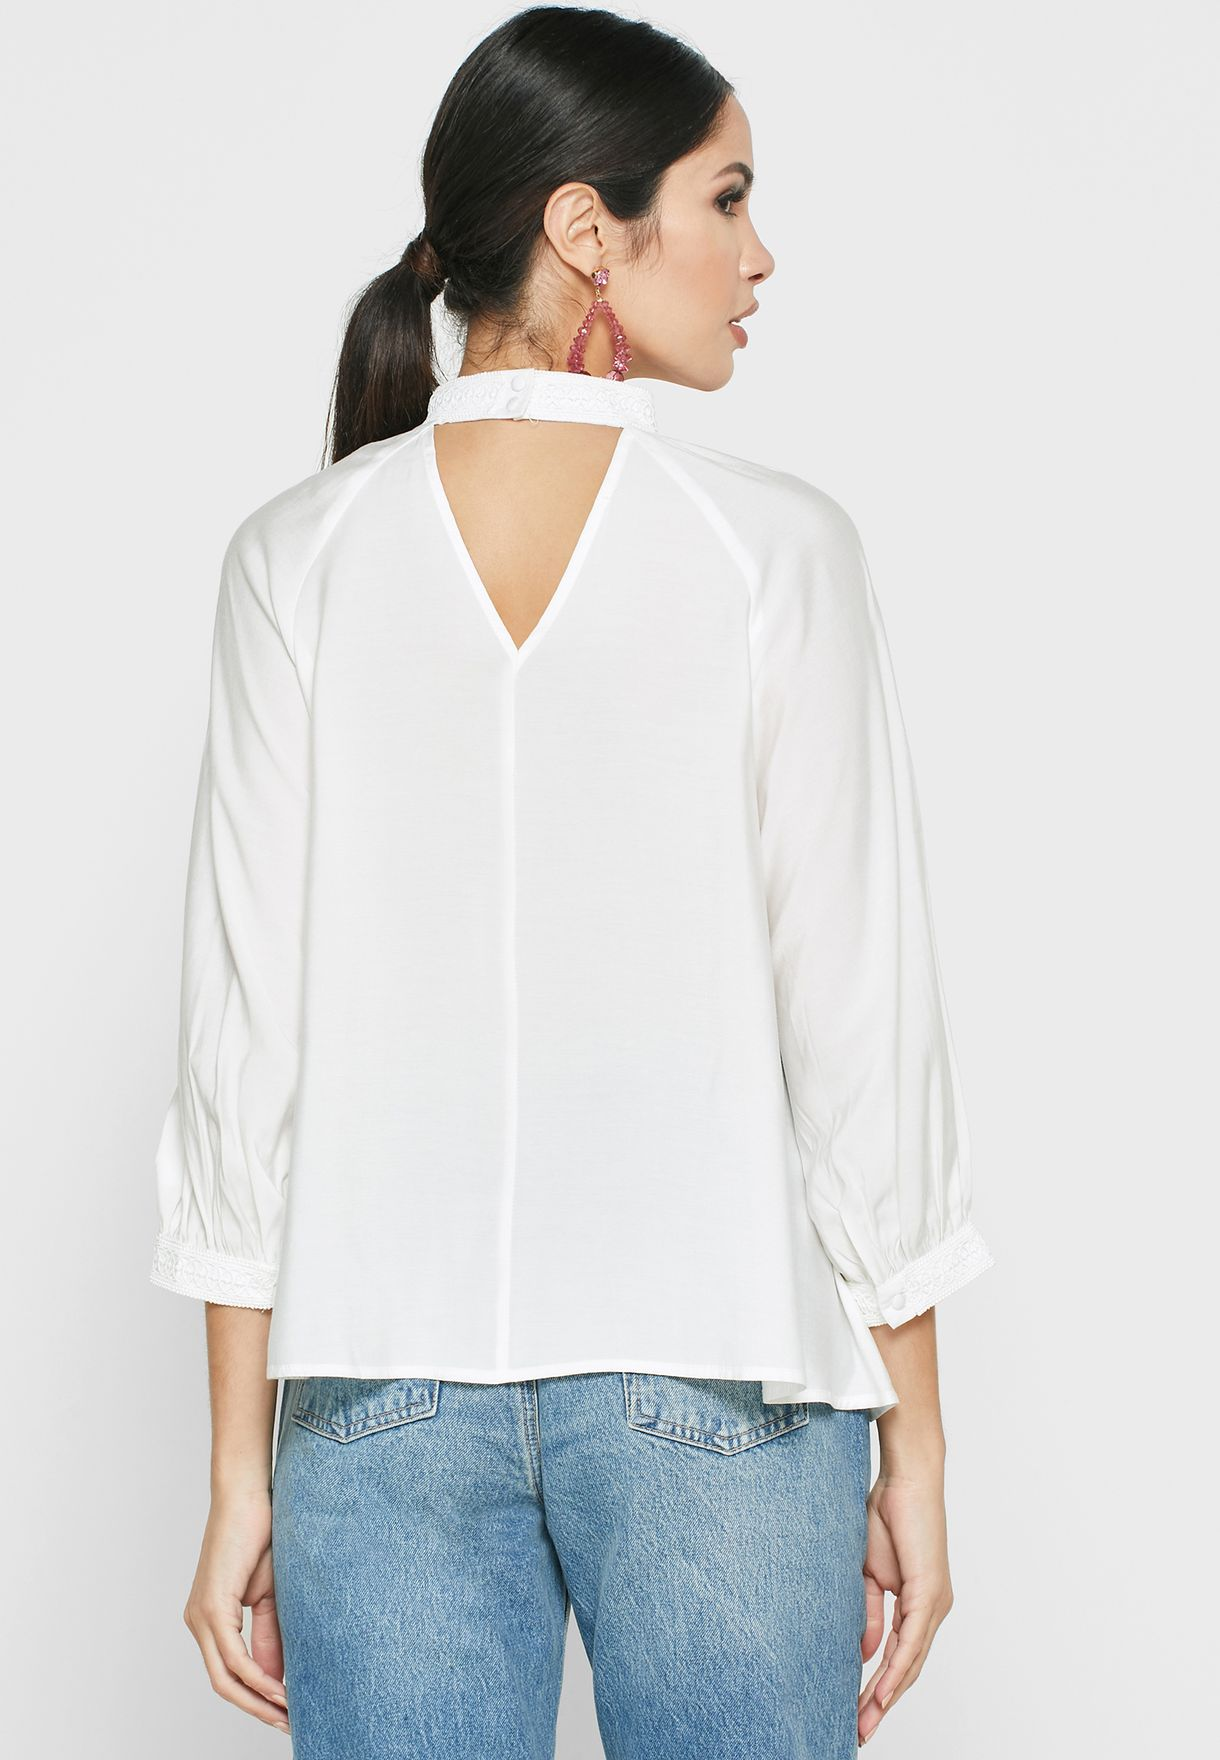 Pleat Detail High Neck Top